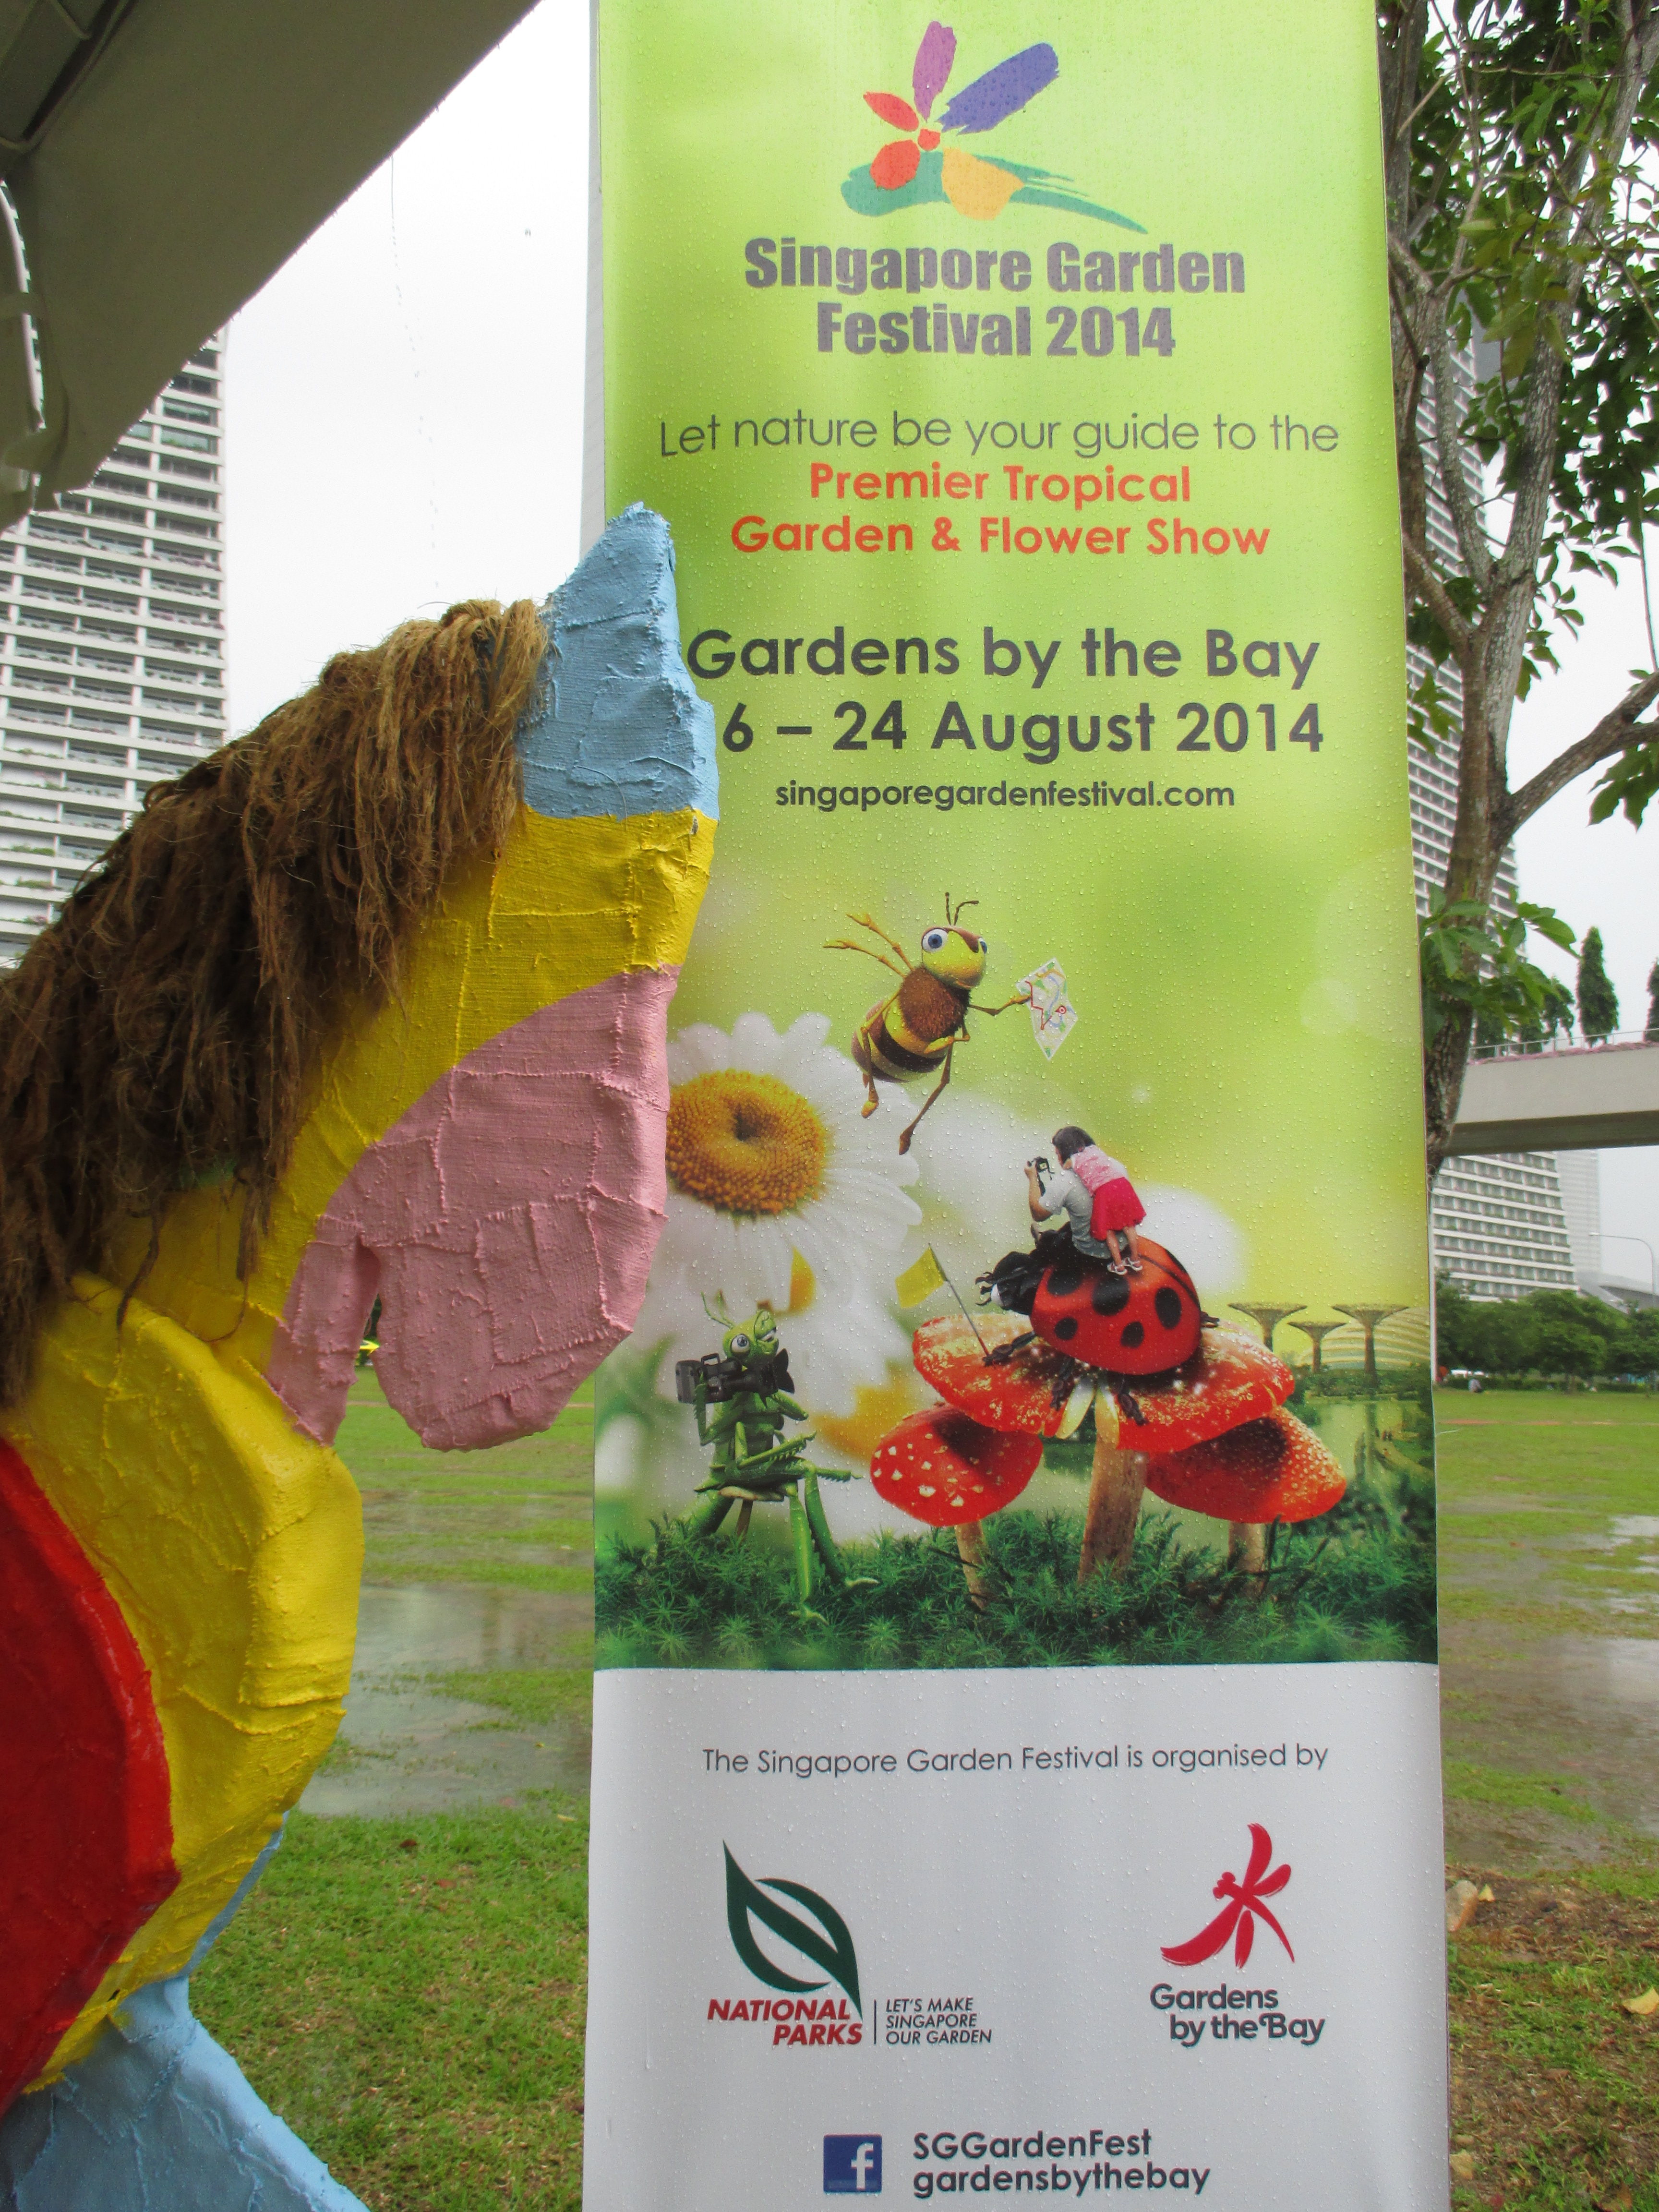 garden by the bay august 2014